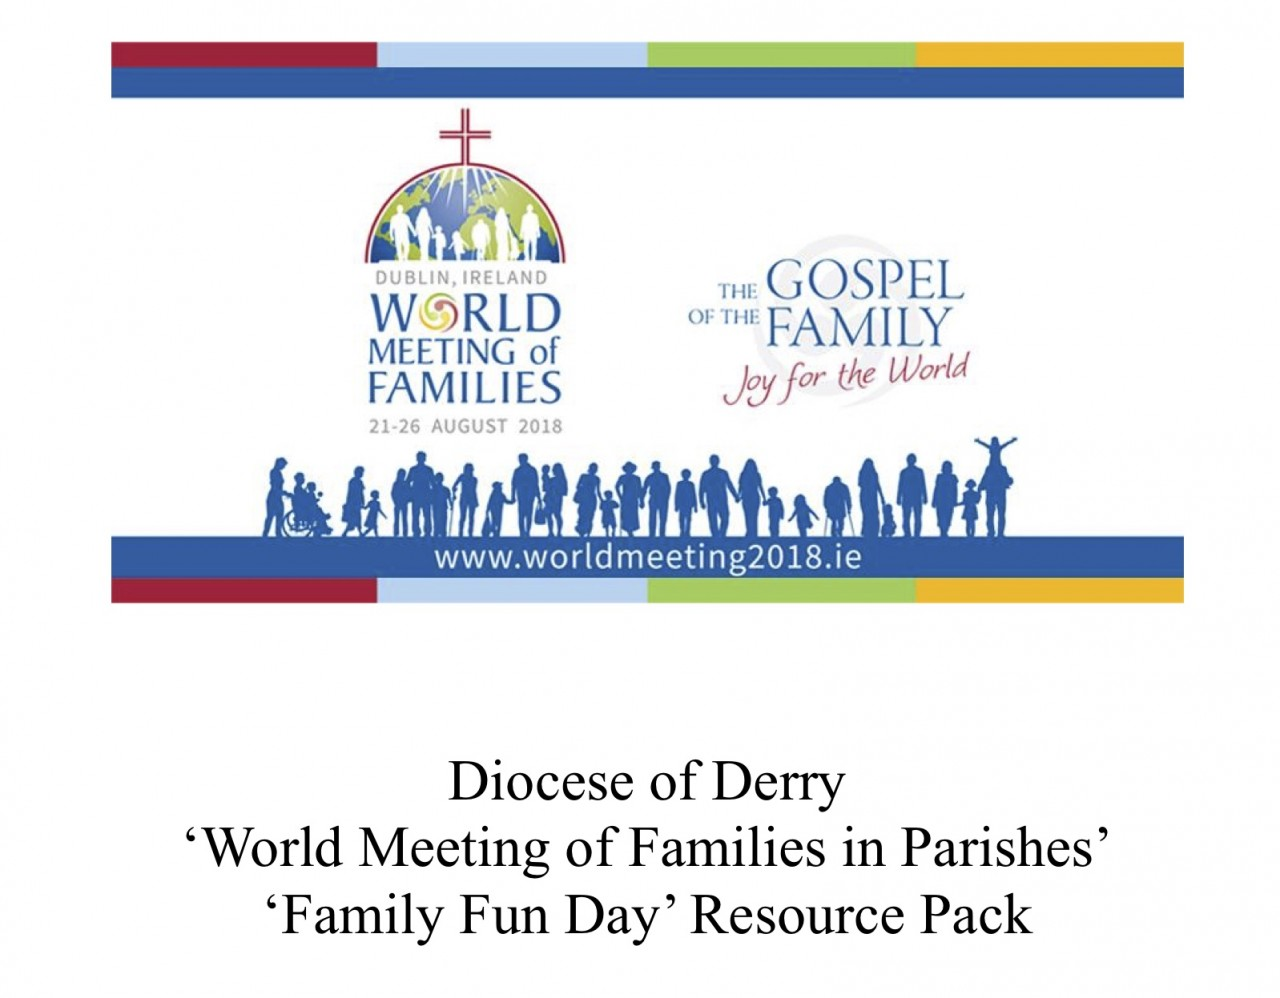 Diocesan Youth Commission 'World Meeting of Families in Parishes' Fun Day Resource